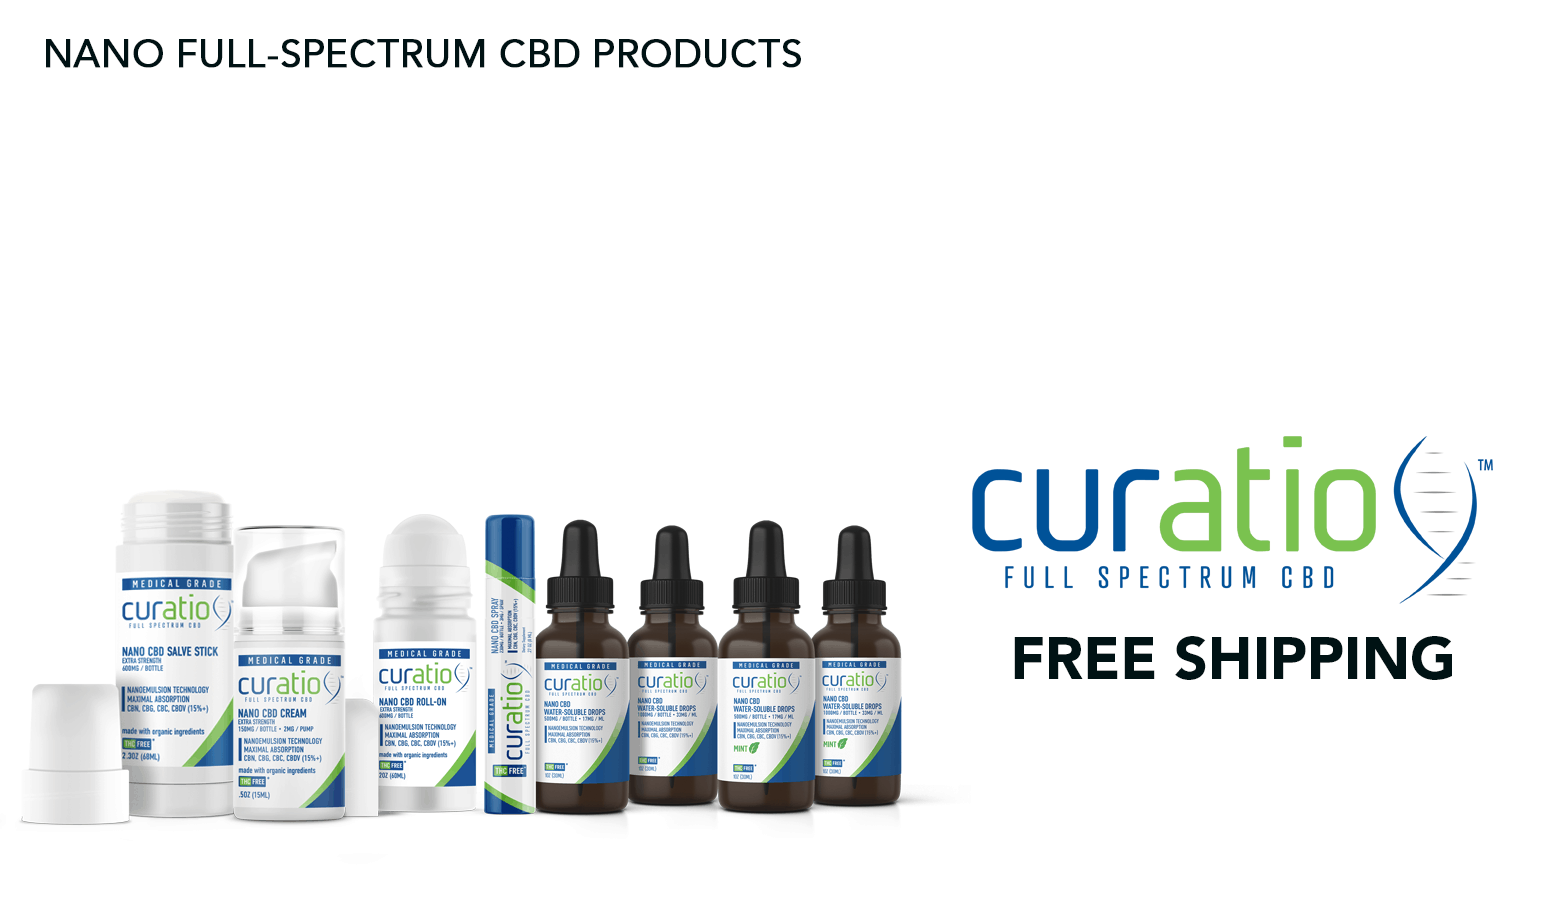 Curatio CBD Coupon Code Free Shipping Website